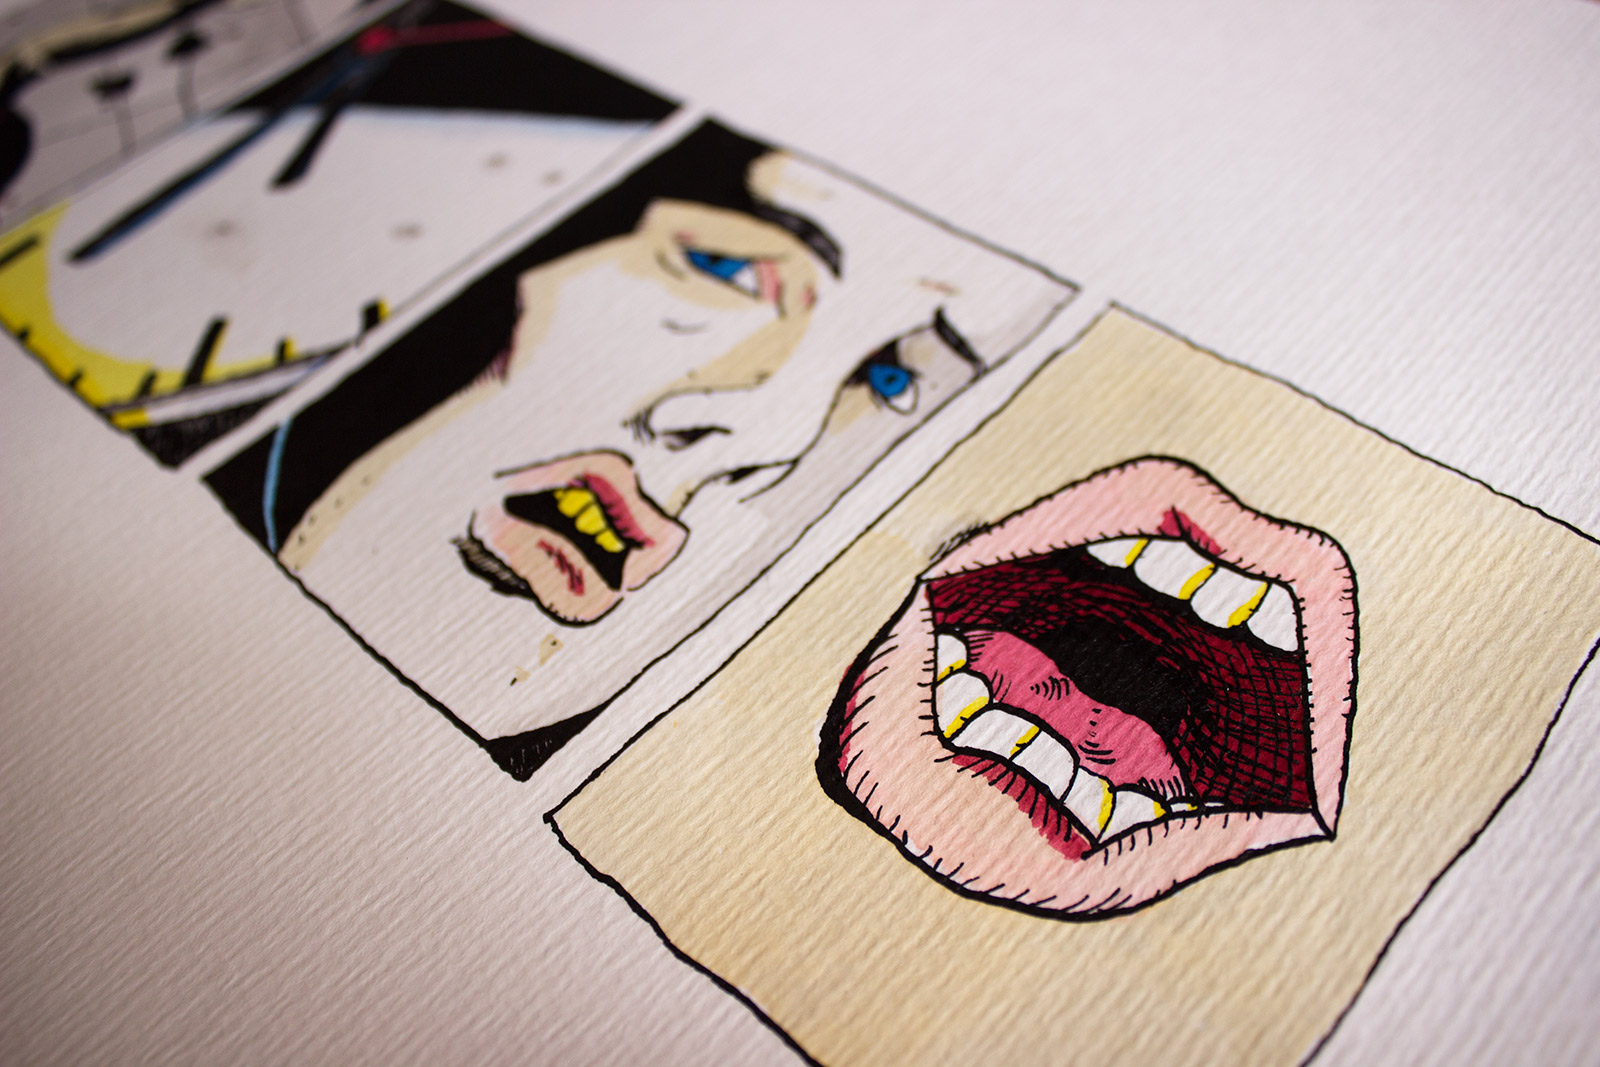 drawings, graphical, illustrative, pop, portraiture, cartoons, everyday life, moods, people, black, white, yellow, ink, paper, watercolor, contemporary-art, faces, modern, modern-art, sketch, Buy original high quality art. Paintings, drawings, limited edition prints & posters by talented artists.